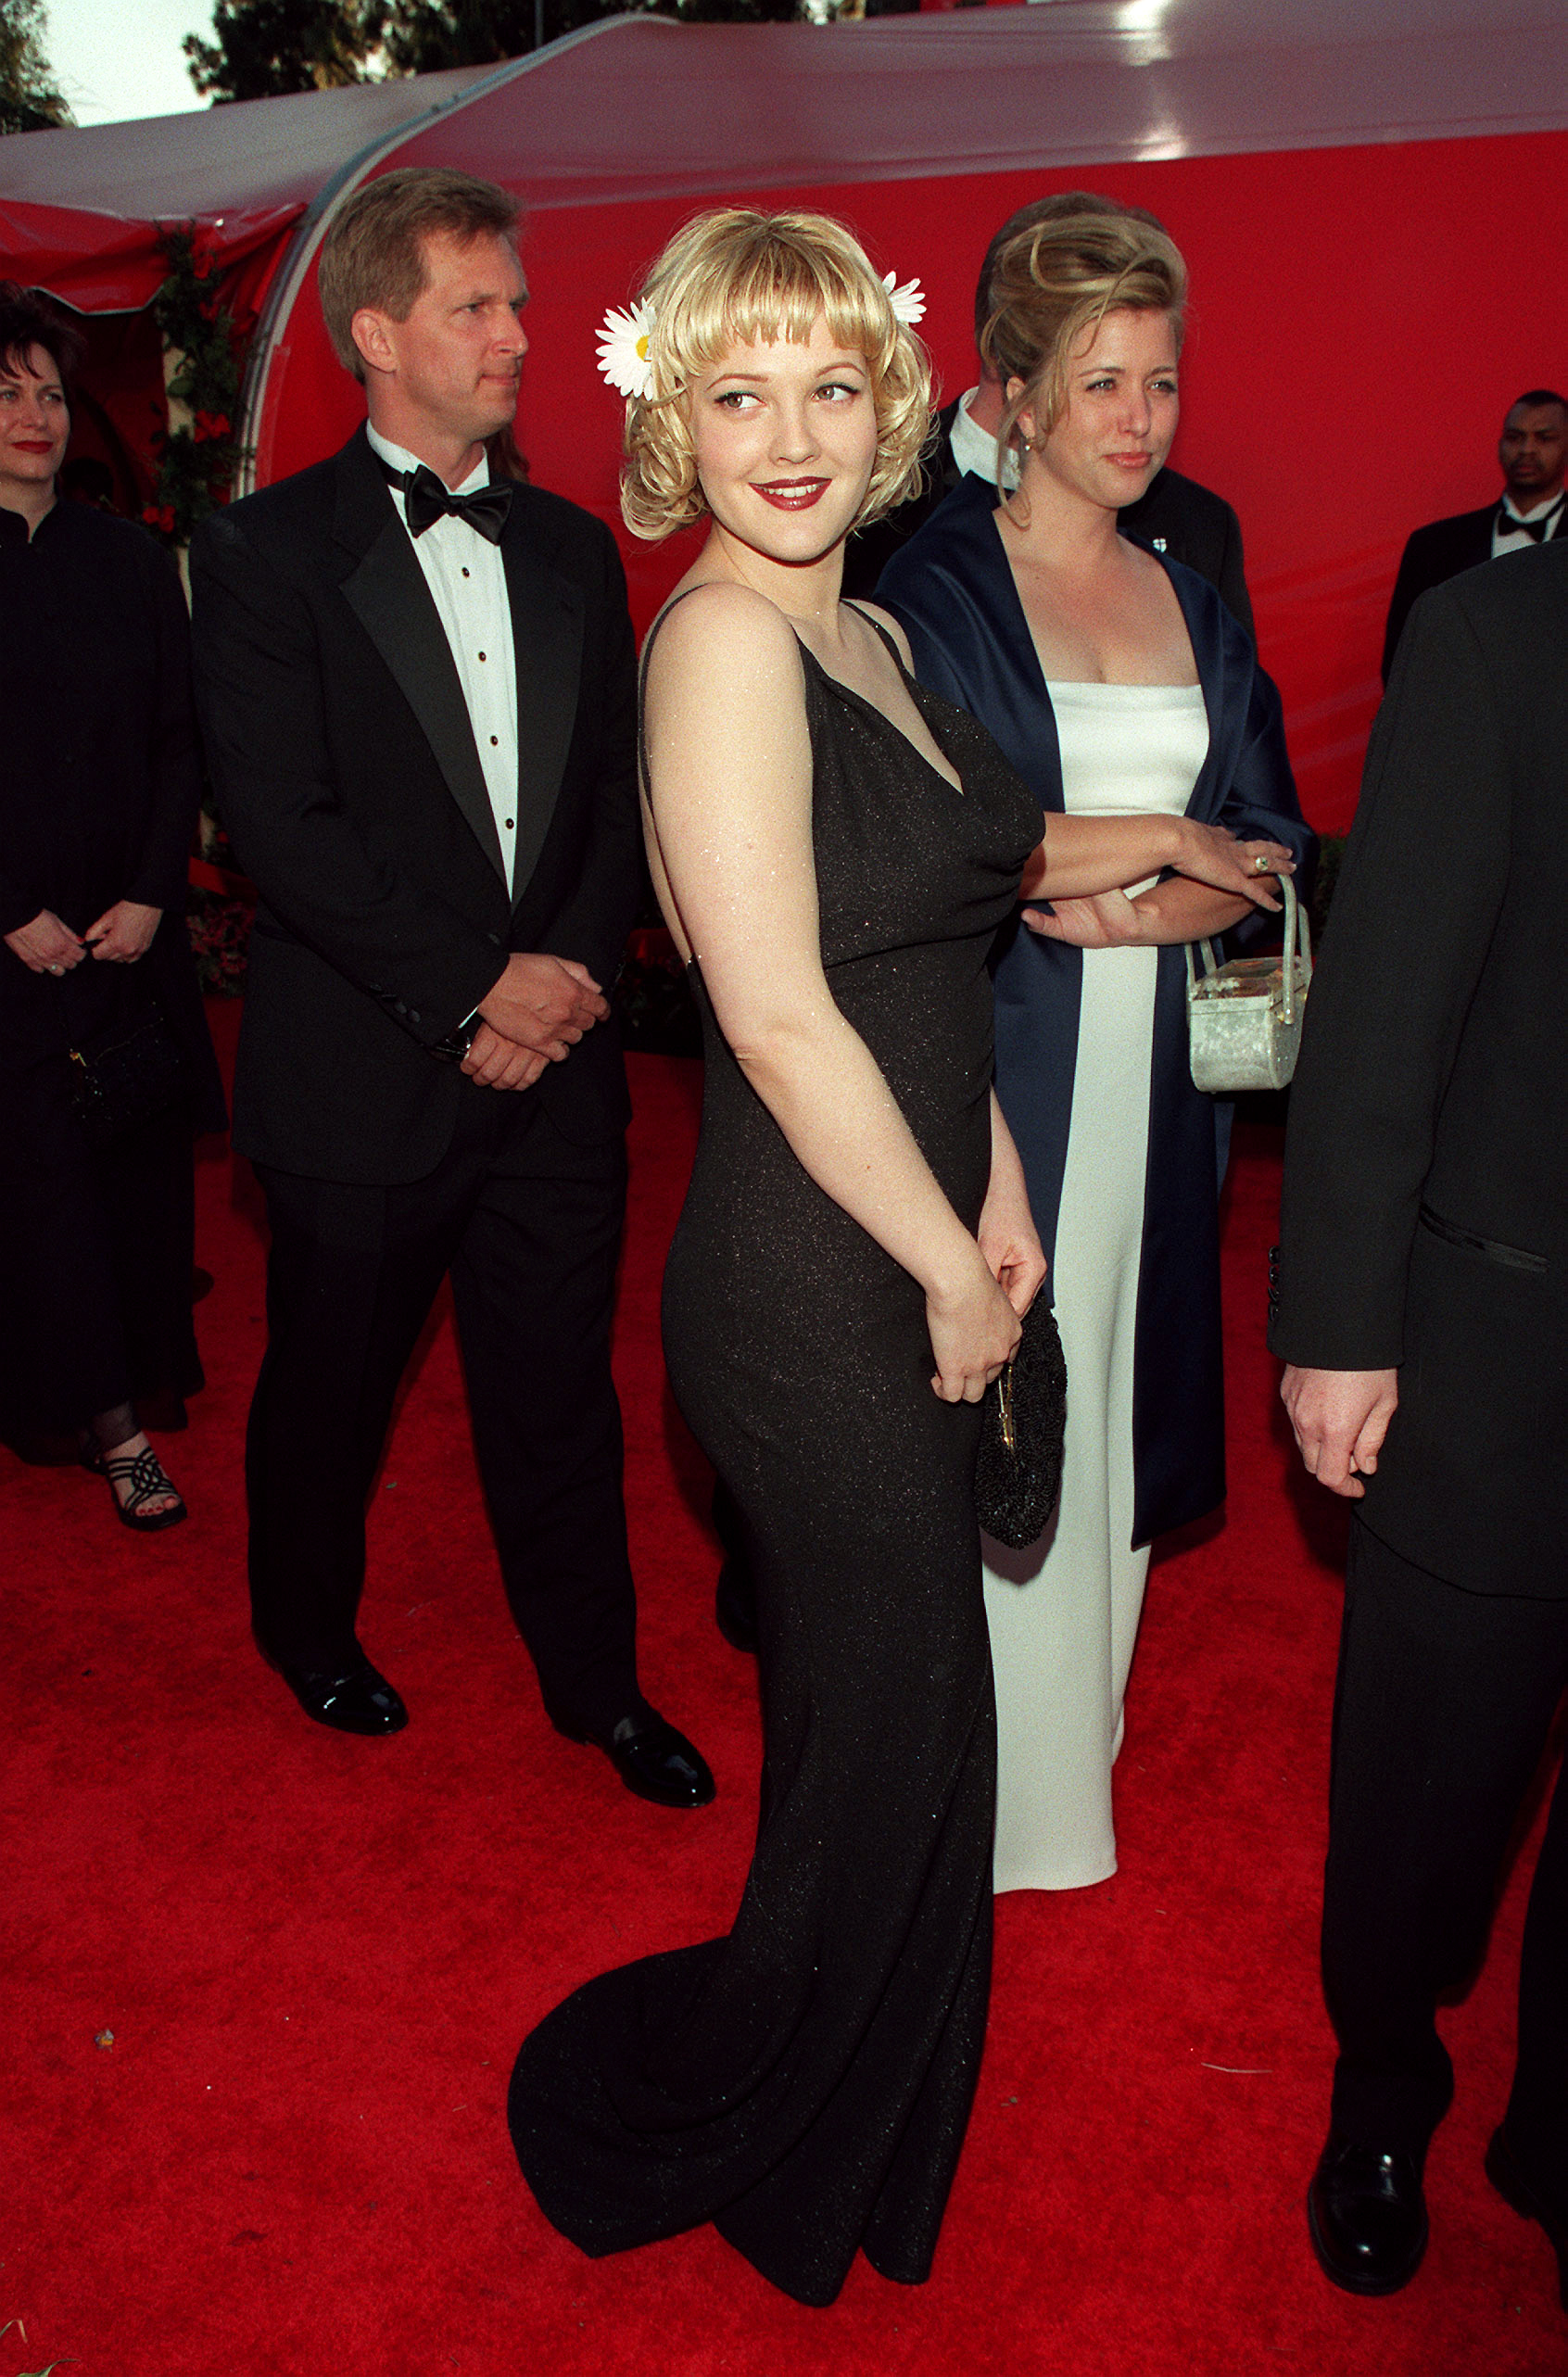 Drew Barrymore arrives at the Shrine auditorium for the 70th annual Academy Awards in Los Angeles on March 23, 1998.